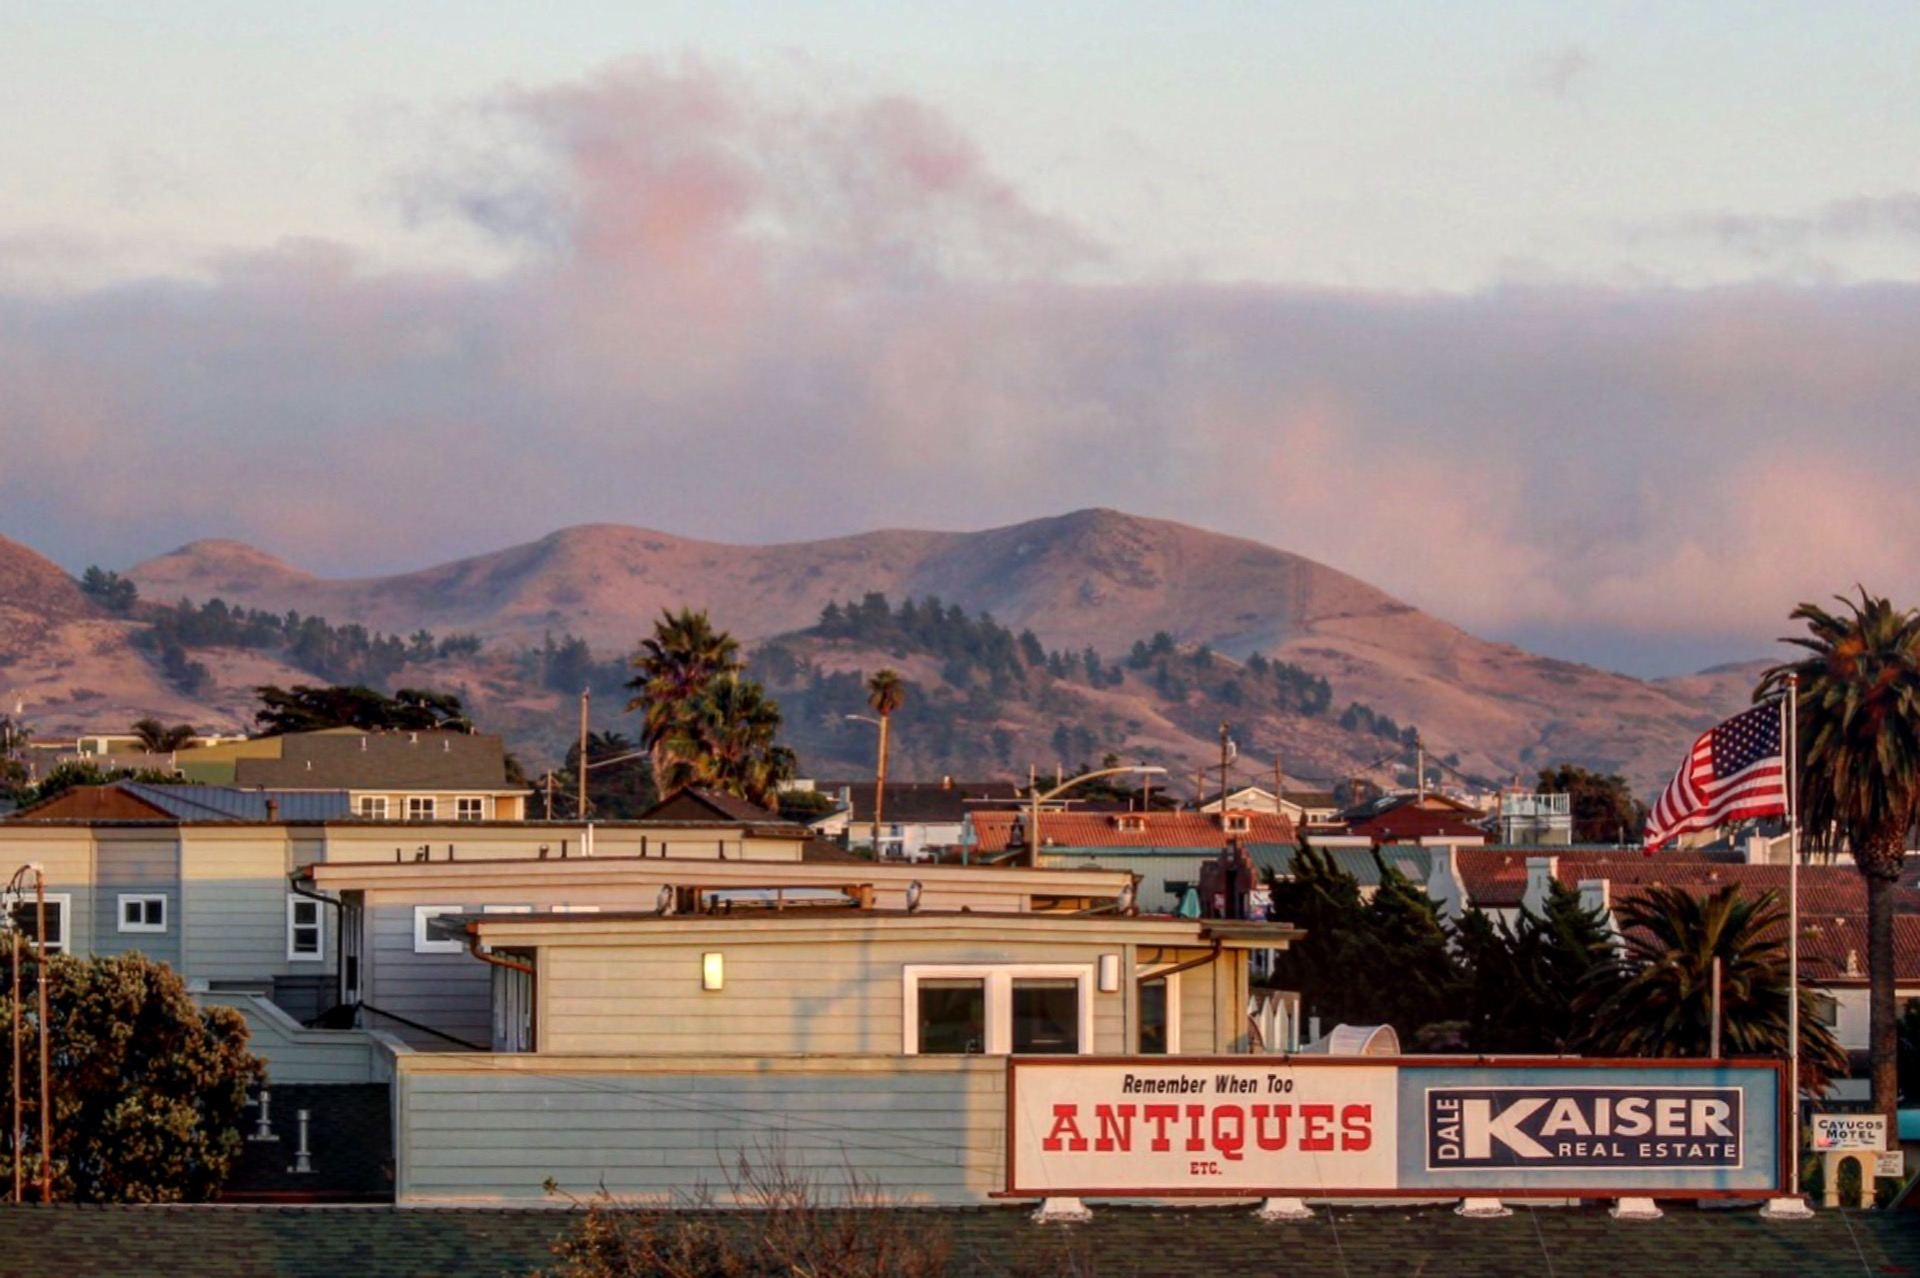 Cayucos and Surrounding Hills From the Rooftop